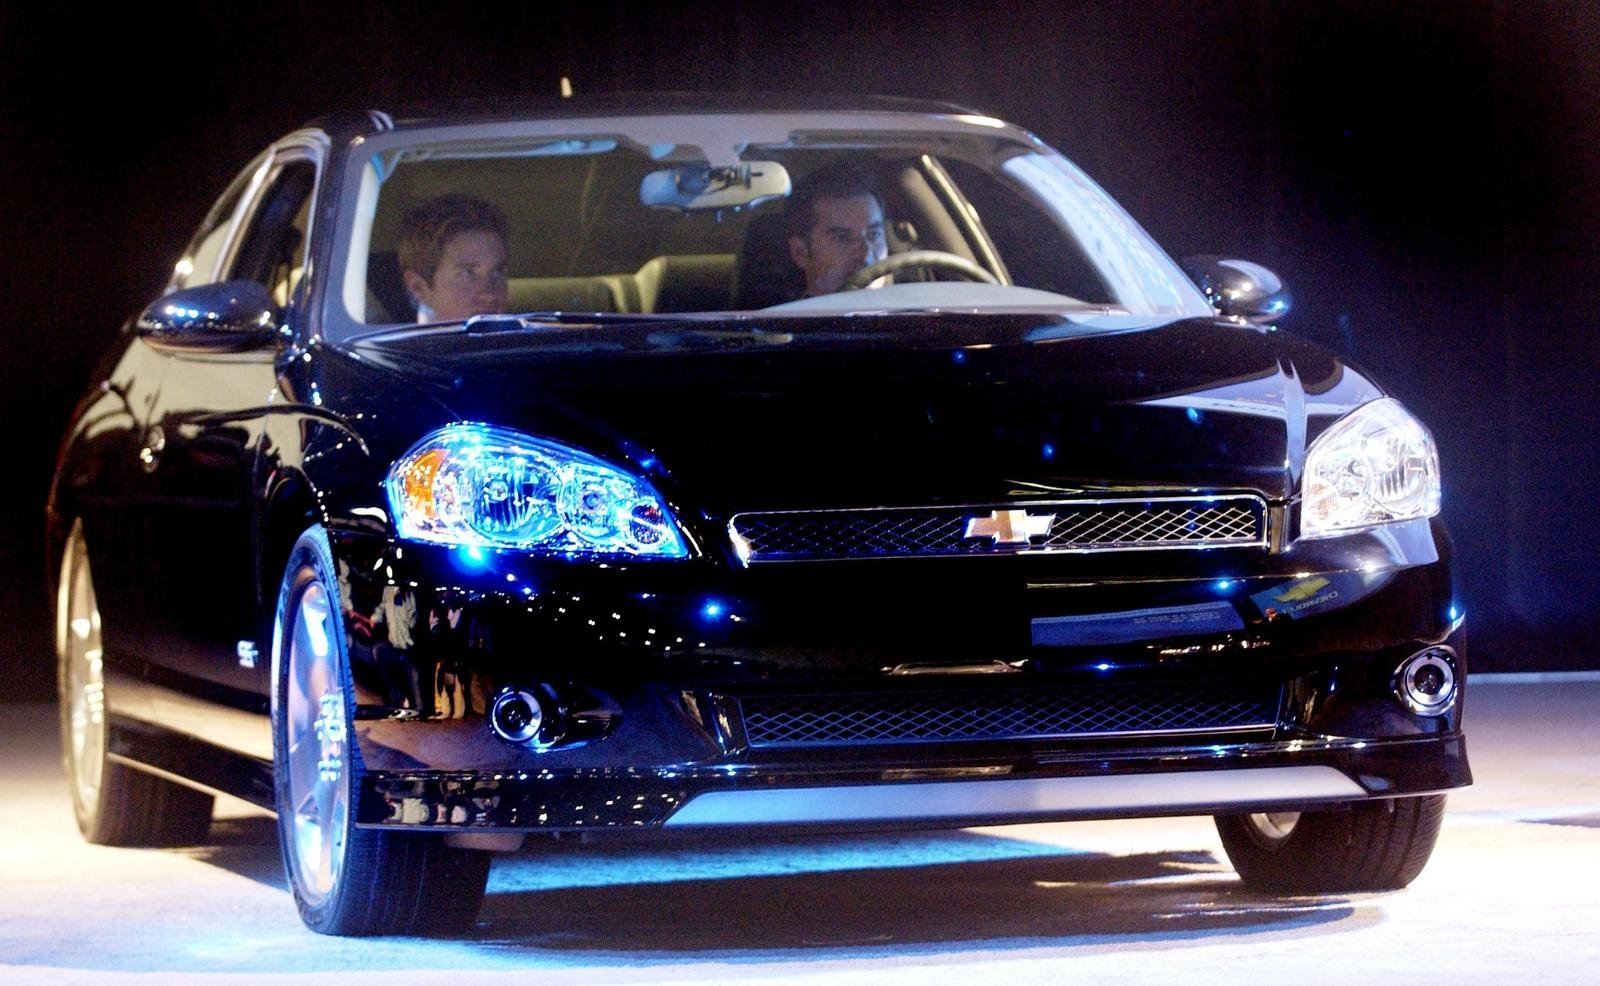 2006 Chevrolet Monte Carlo Review - Top Speed